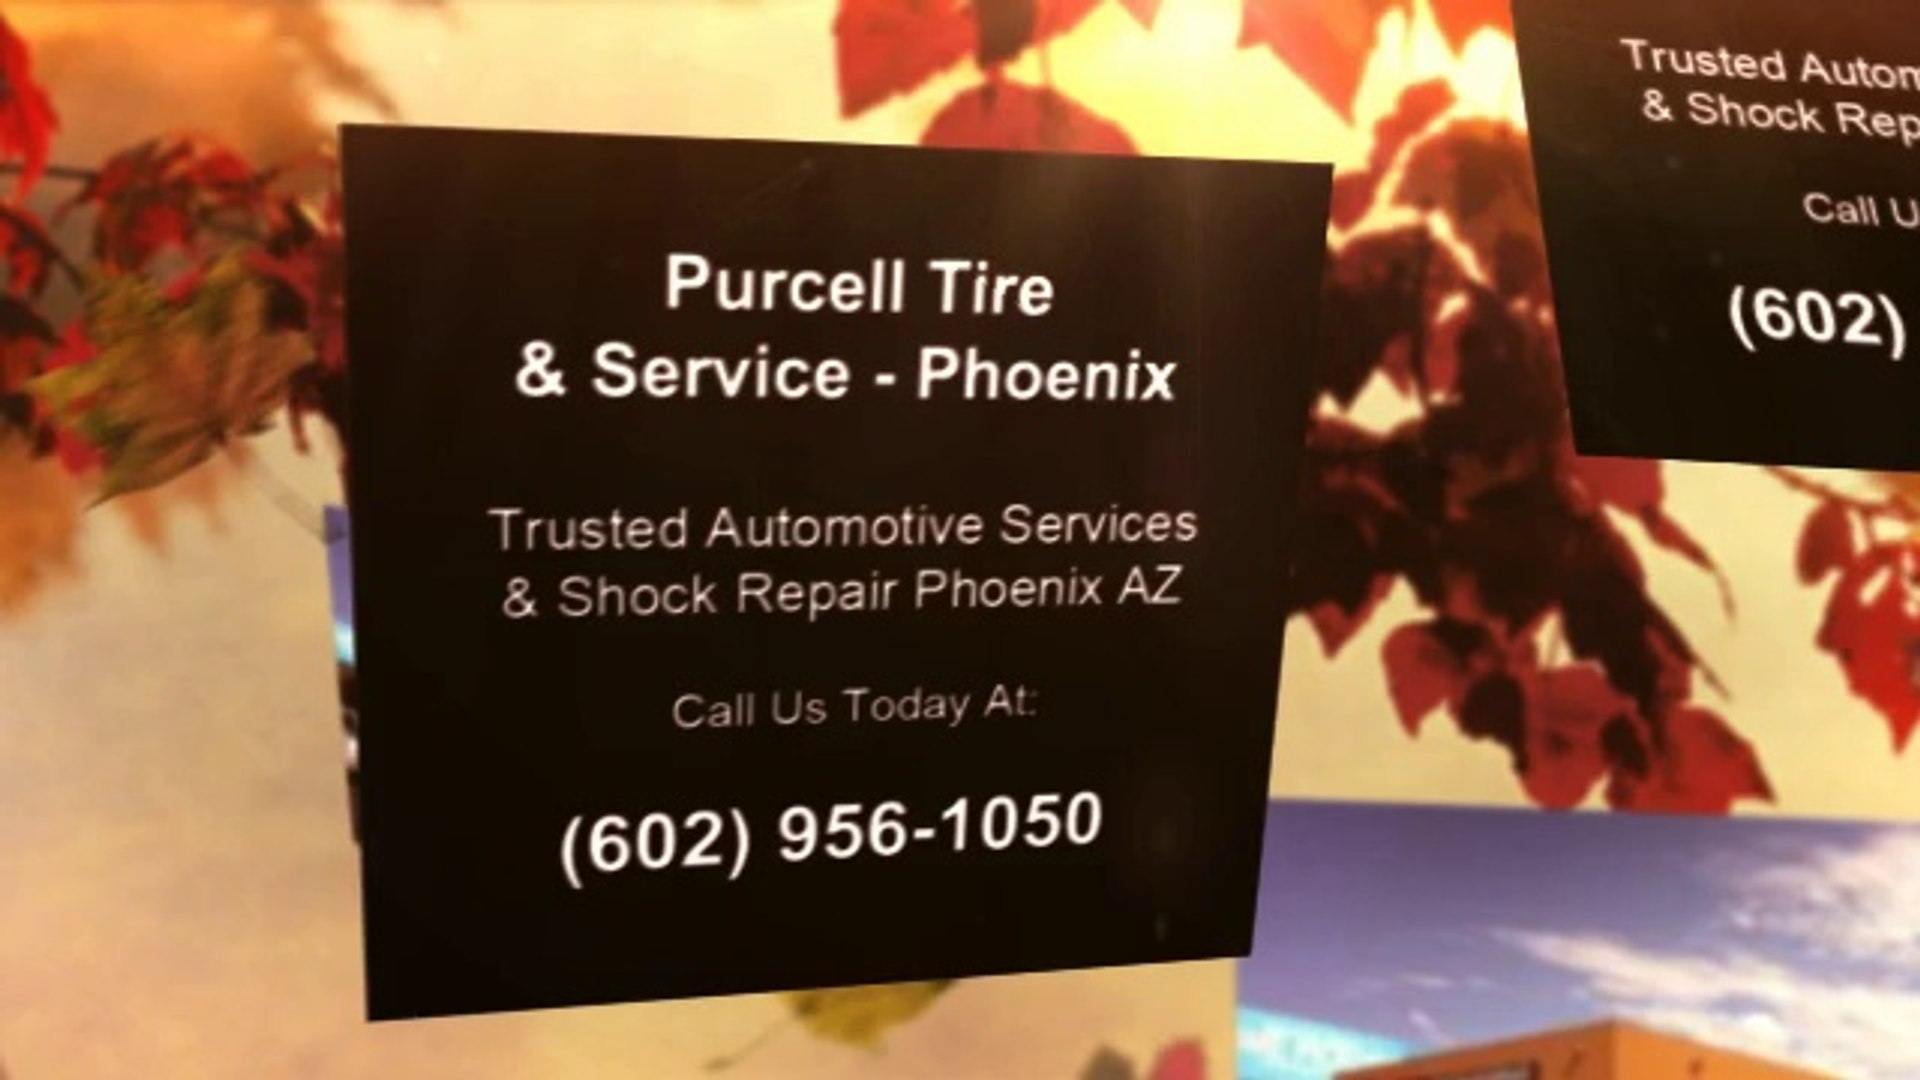 Auto Air Conditioning Phoenix | Purcell Tire & Service - Phoenix (602) 956-1050